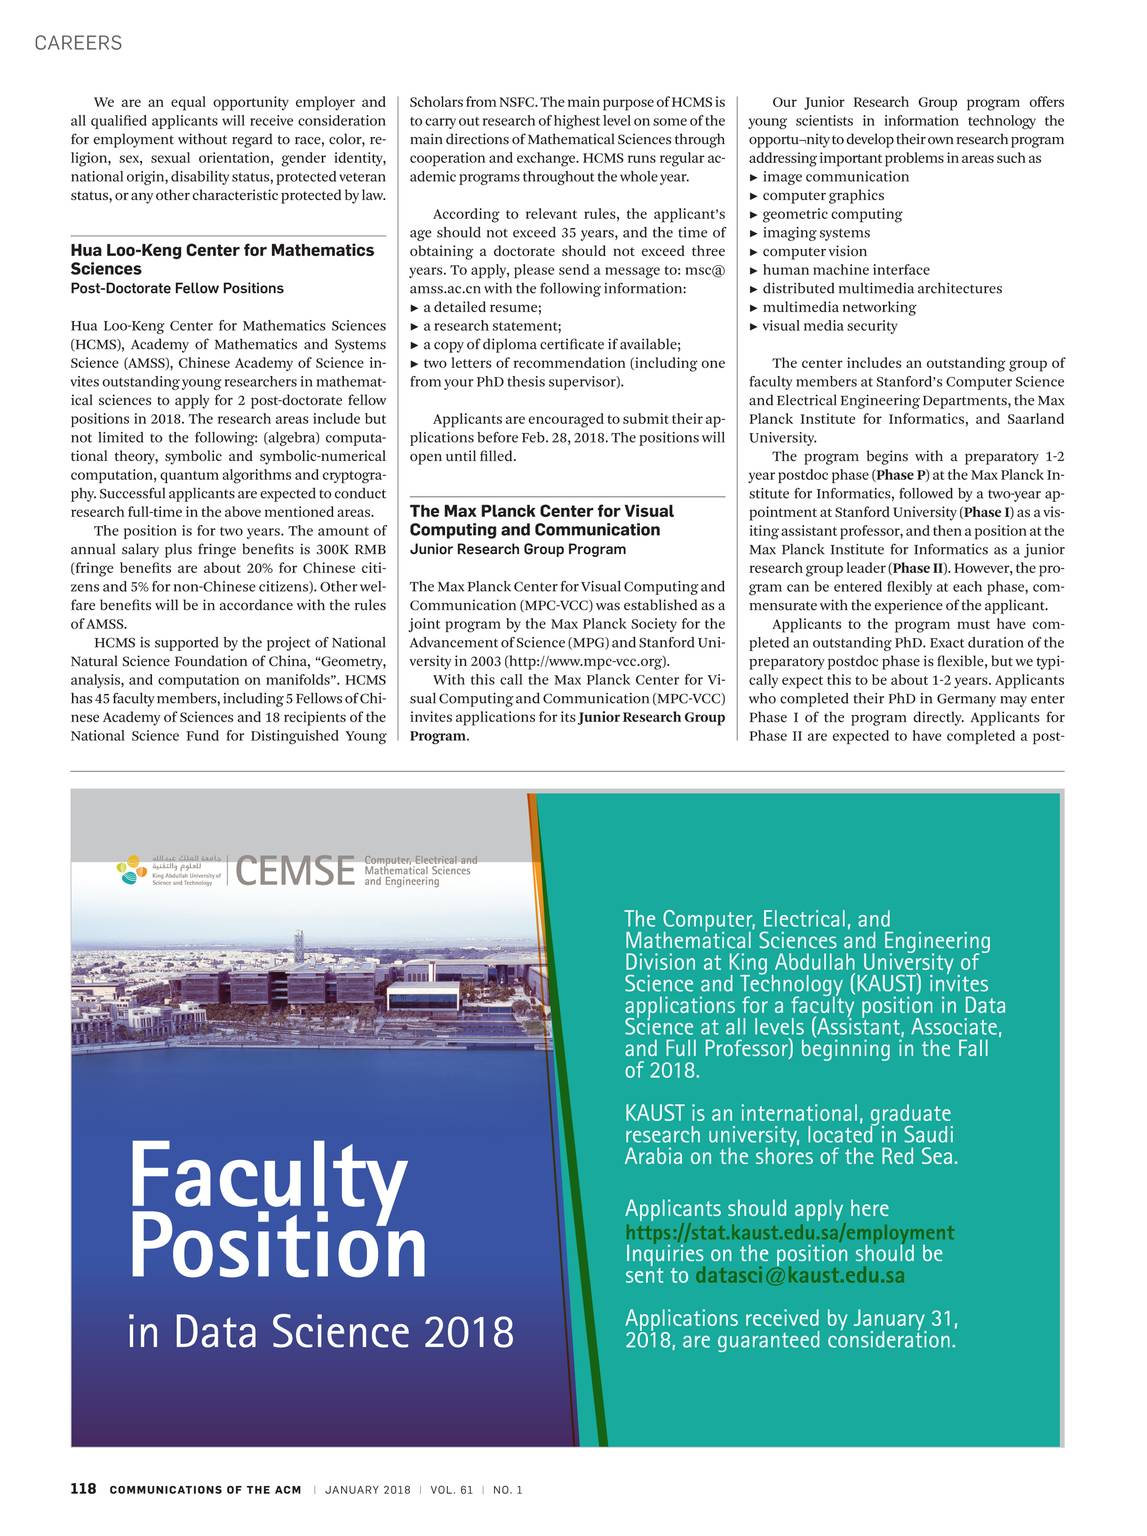 Communications of the ACM - January 2018 - page 119